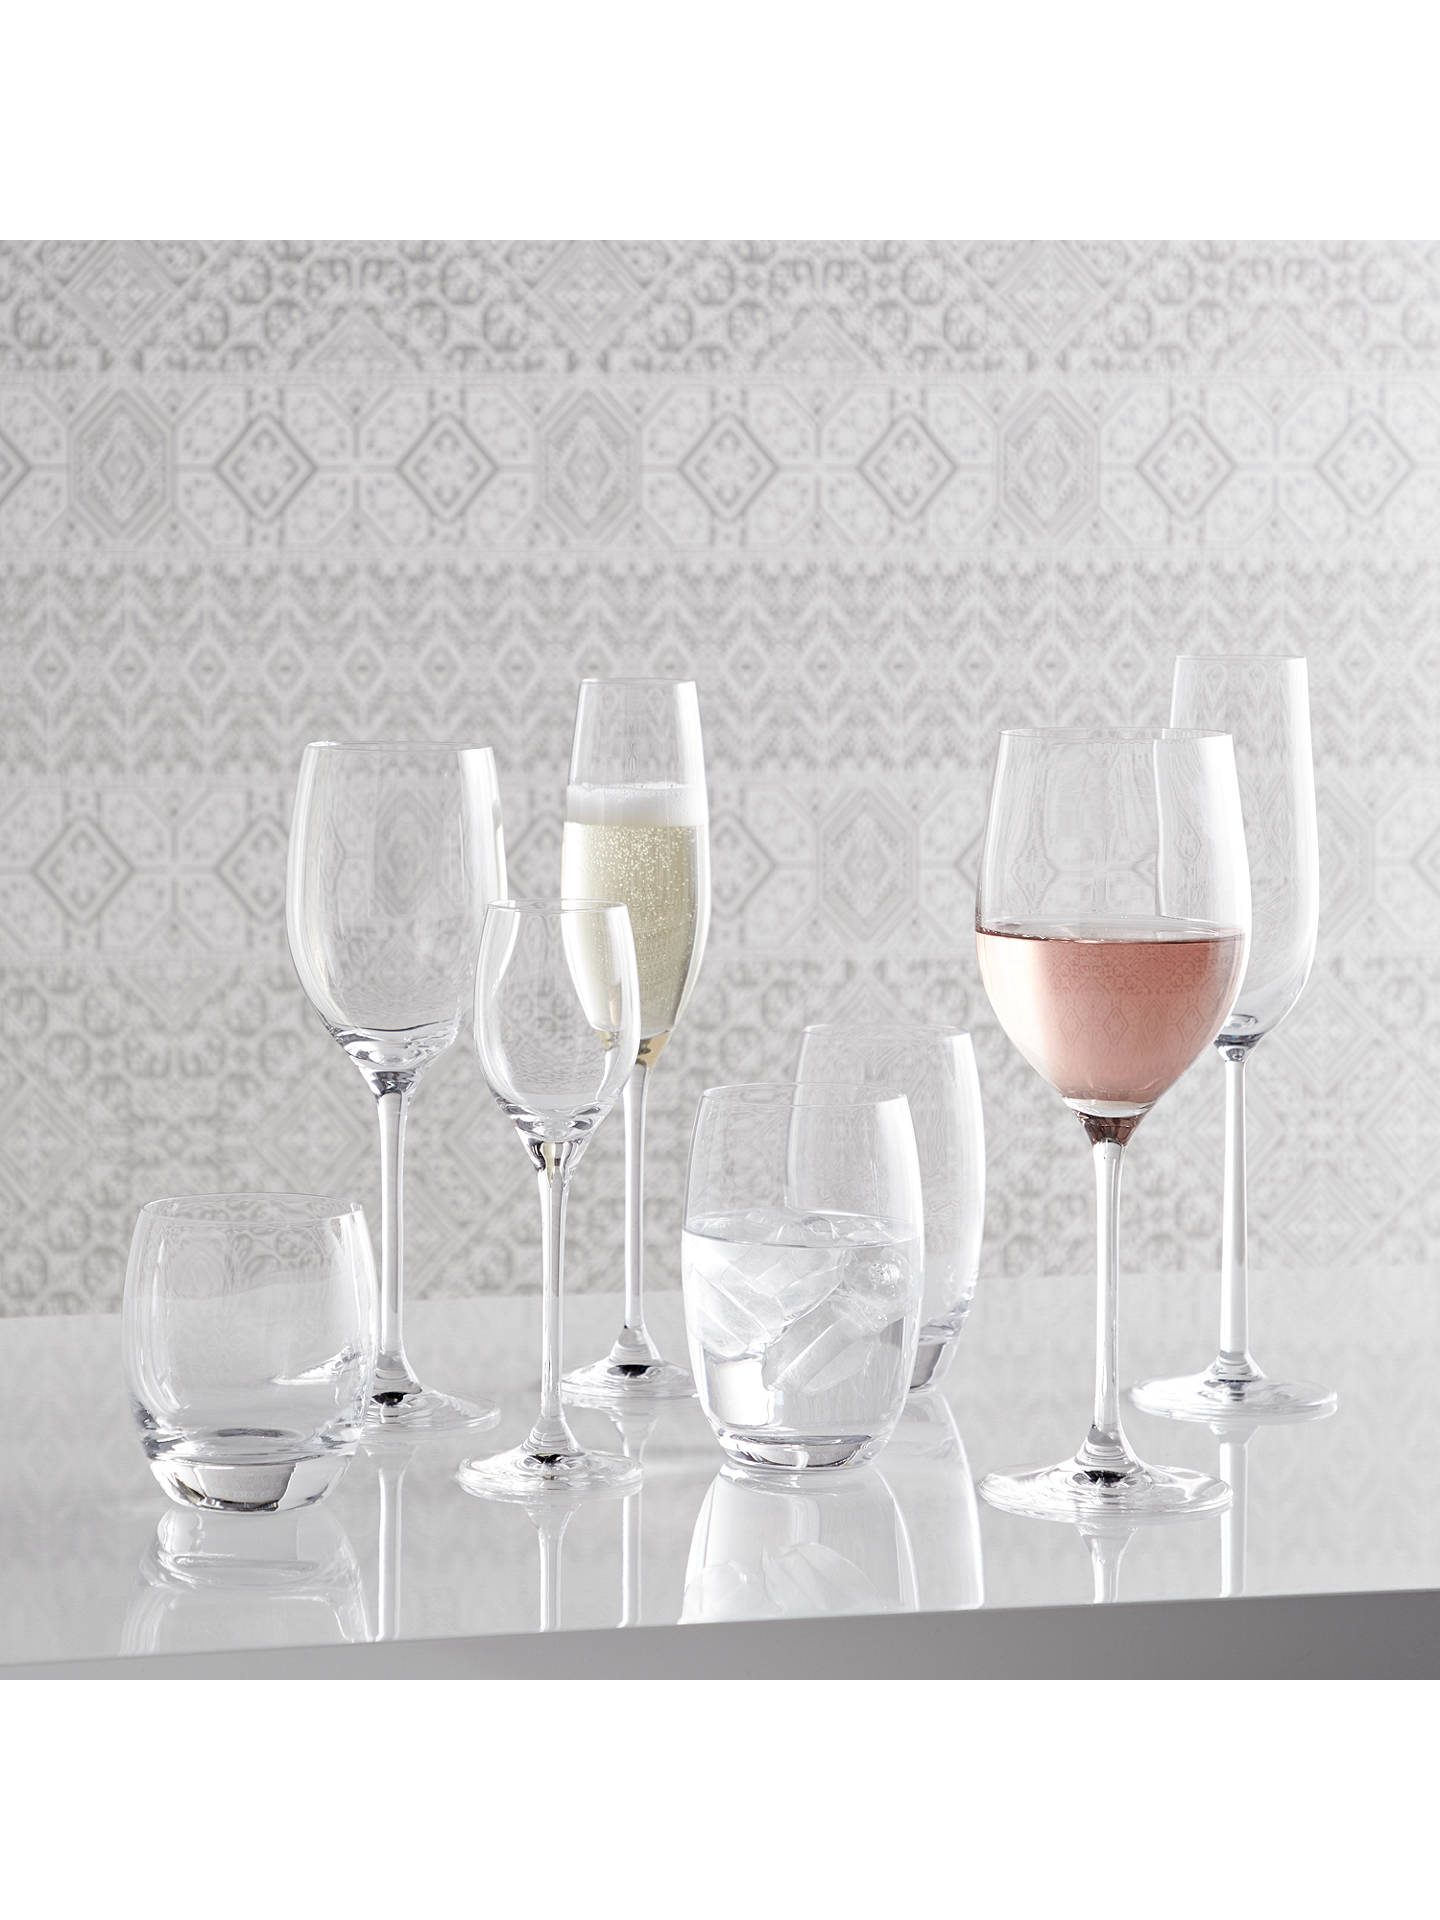 BuyJohn Lewis & Partners Vino White Wine Glasses, Set of 4, 350ml Online at johnlewis.com